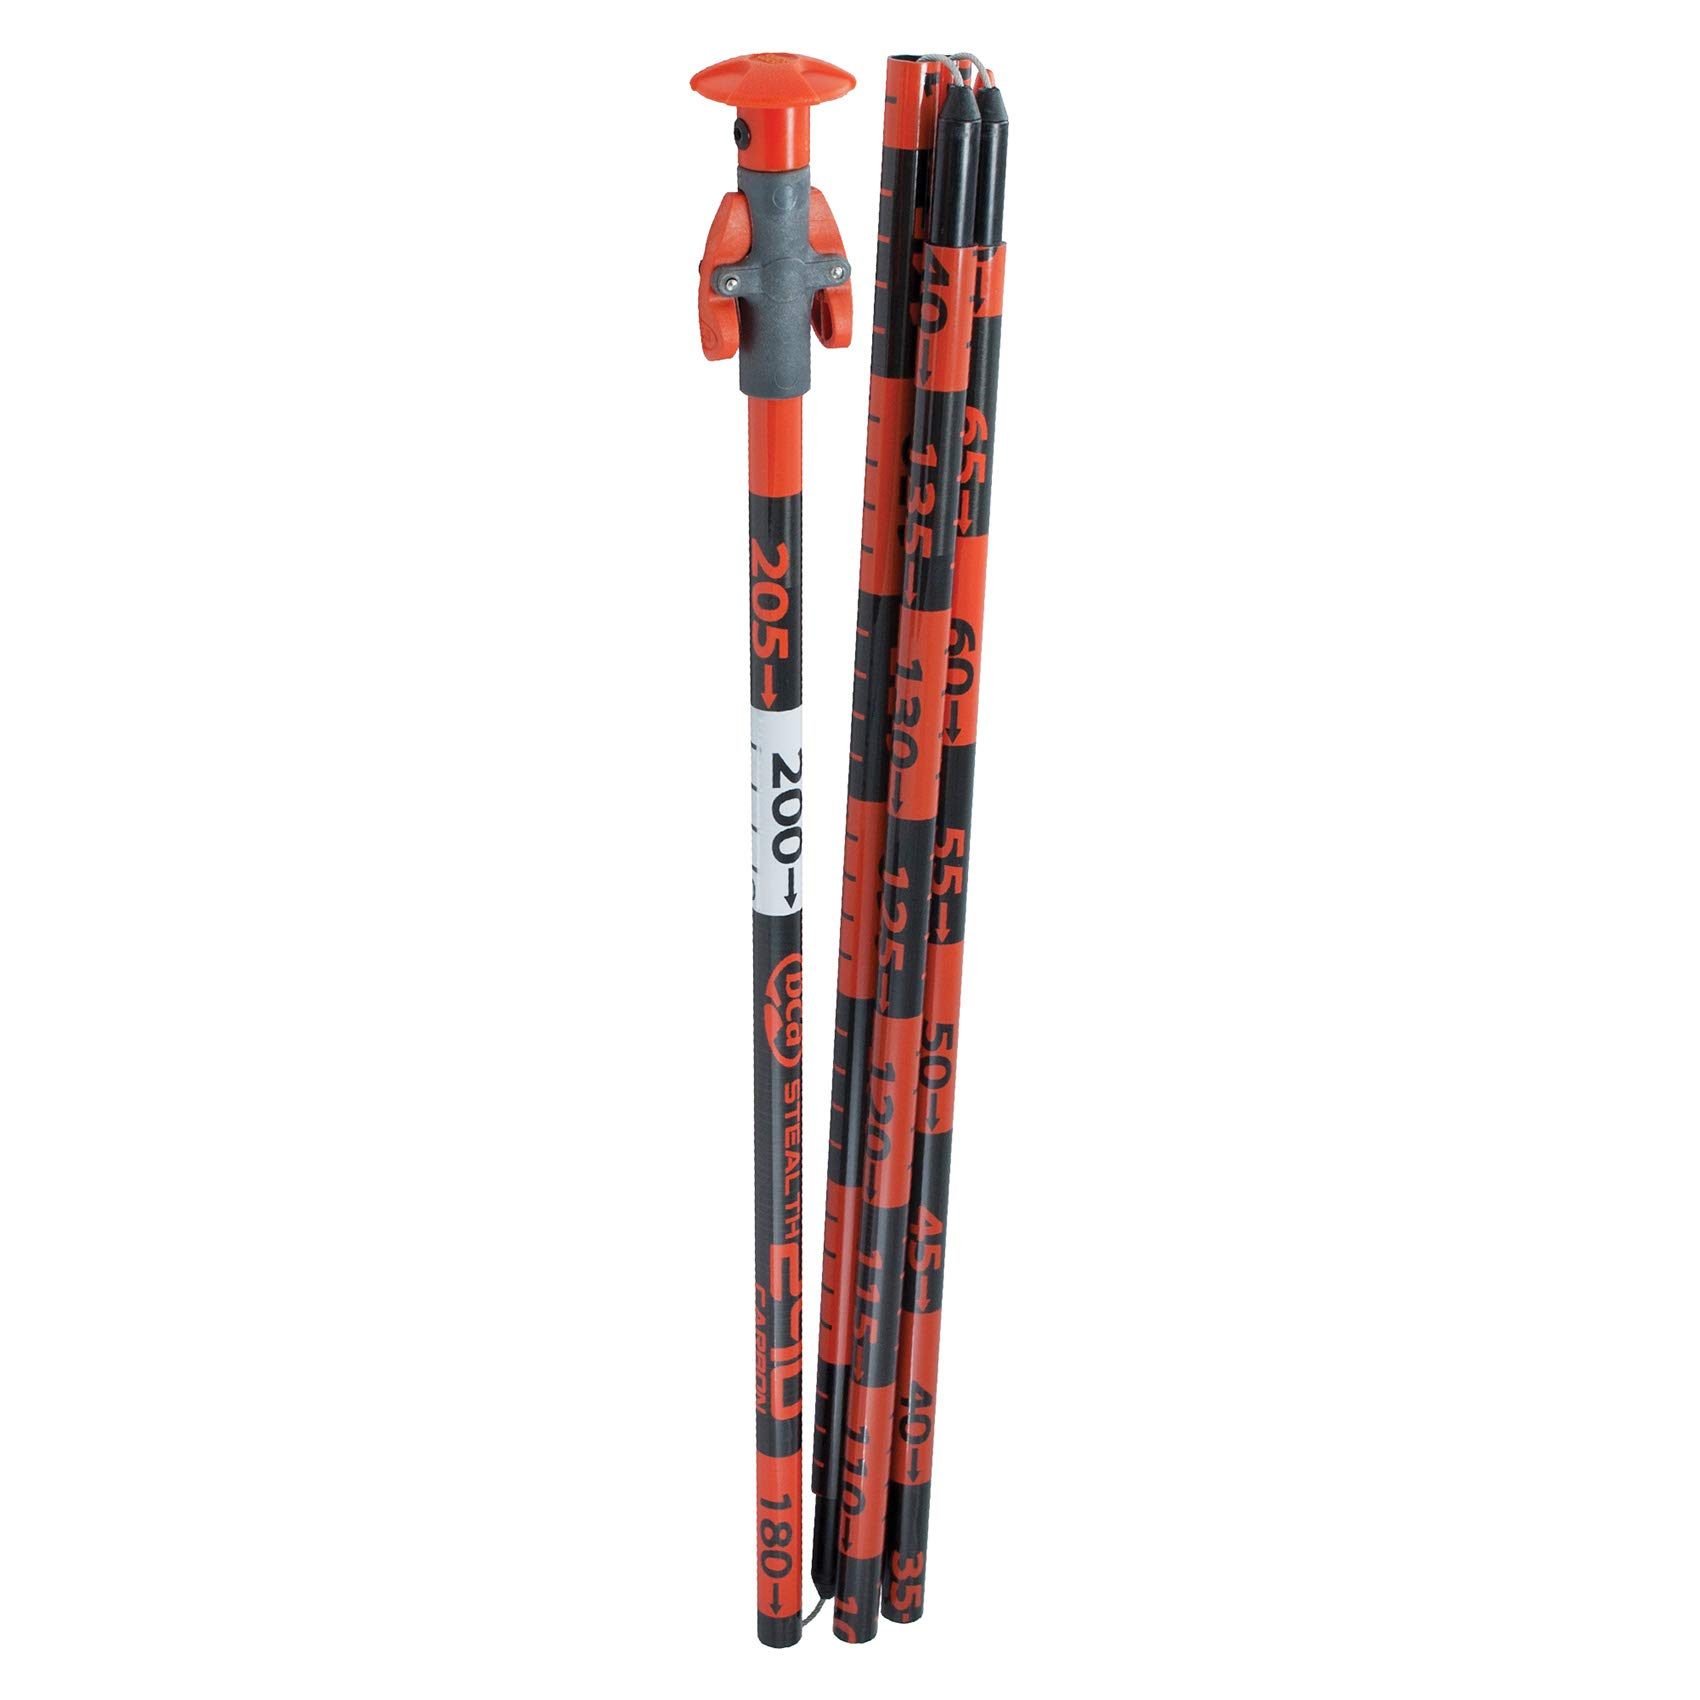 Backcountry Access BCA Stealth 240 Carbon Probe - 240cm - Orange by Backcountry Access